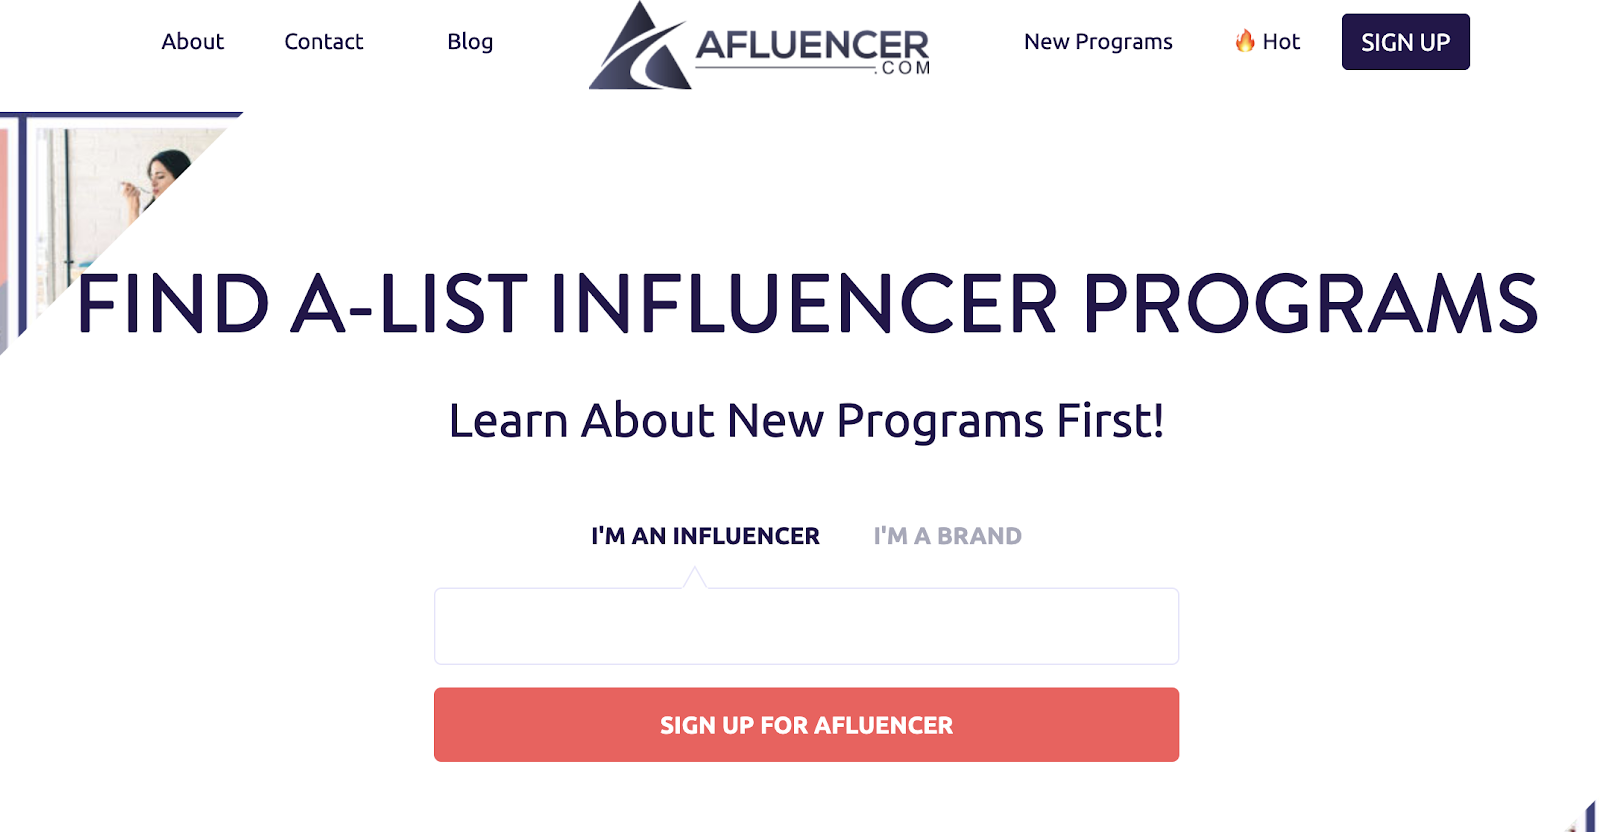 Afluencer - Connect with Top Influencers in Your Niche